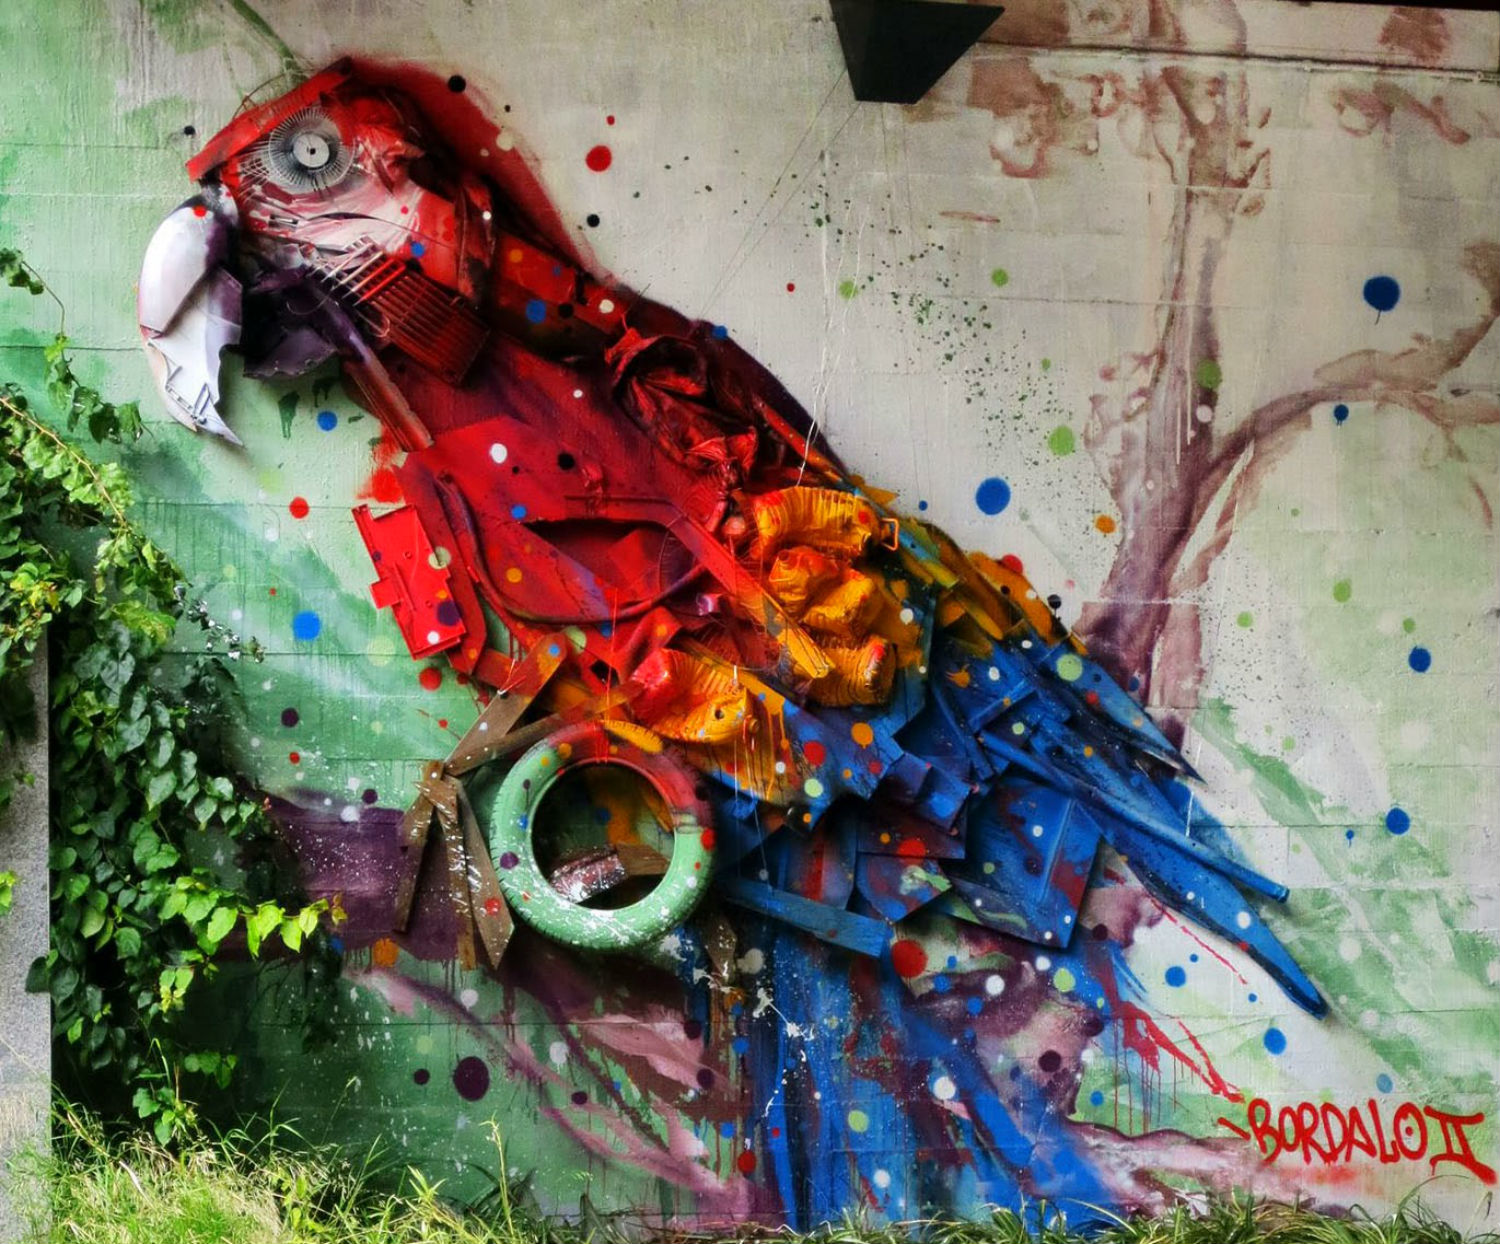 Bordalo !! graffiti parrot colour